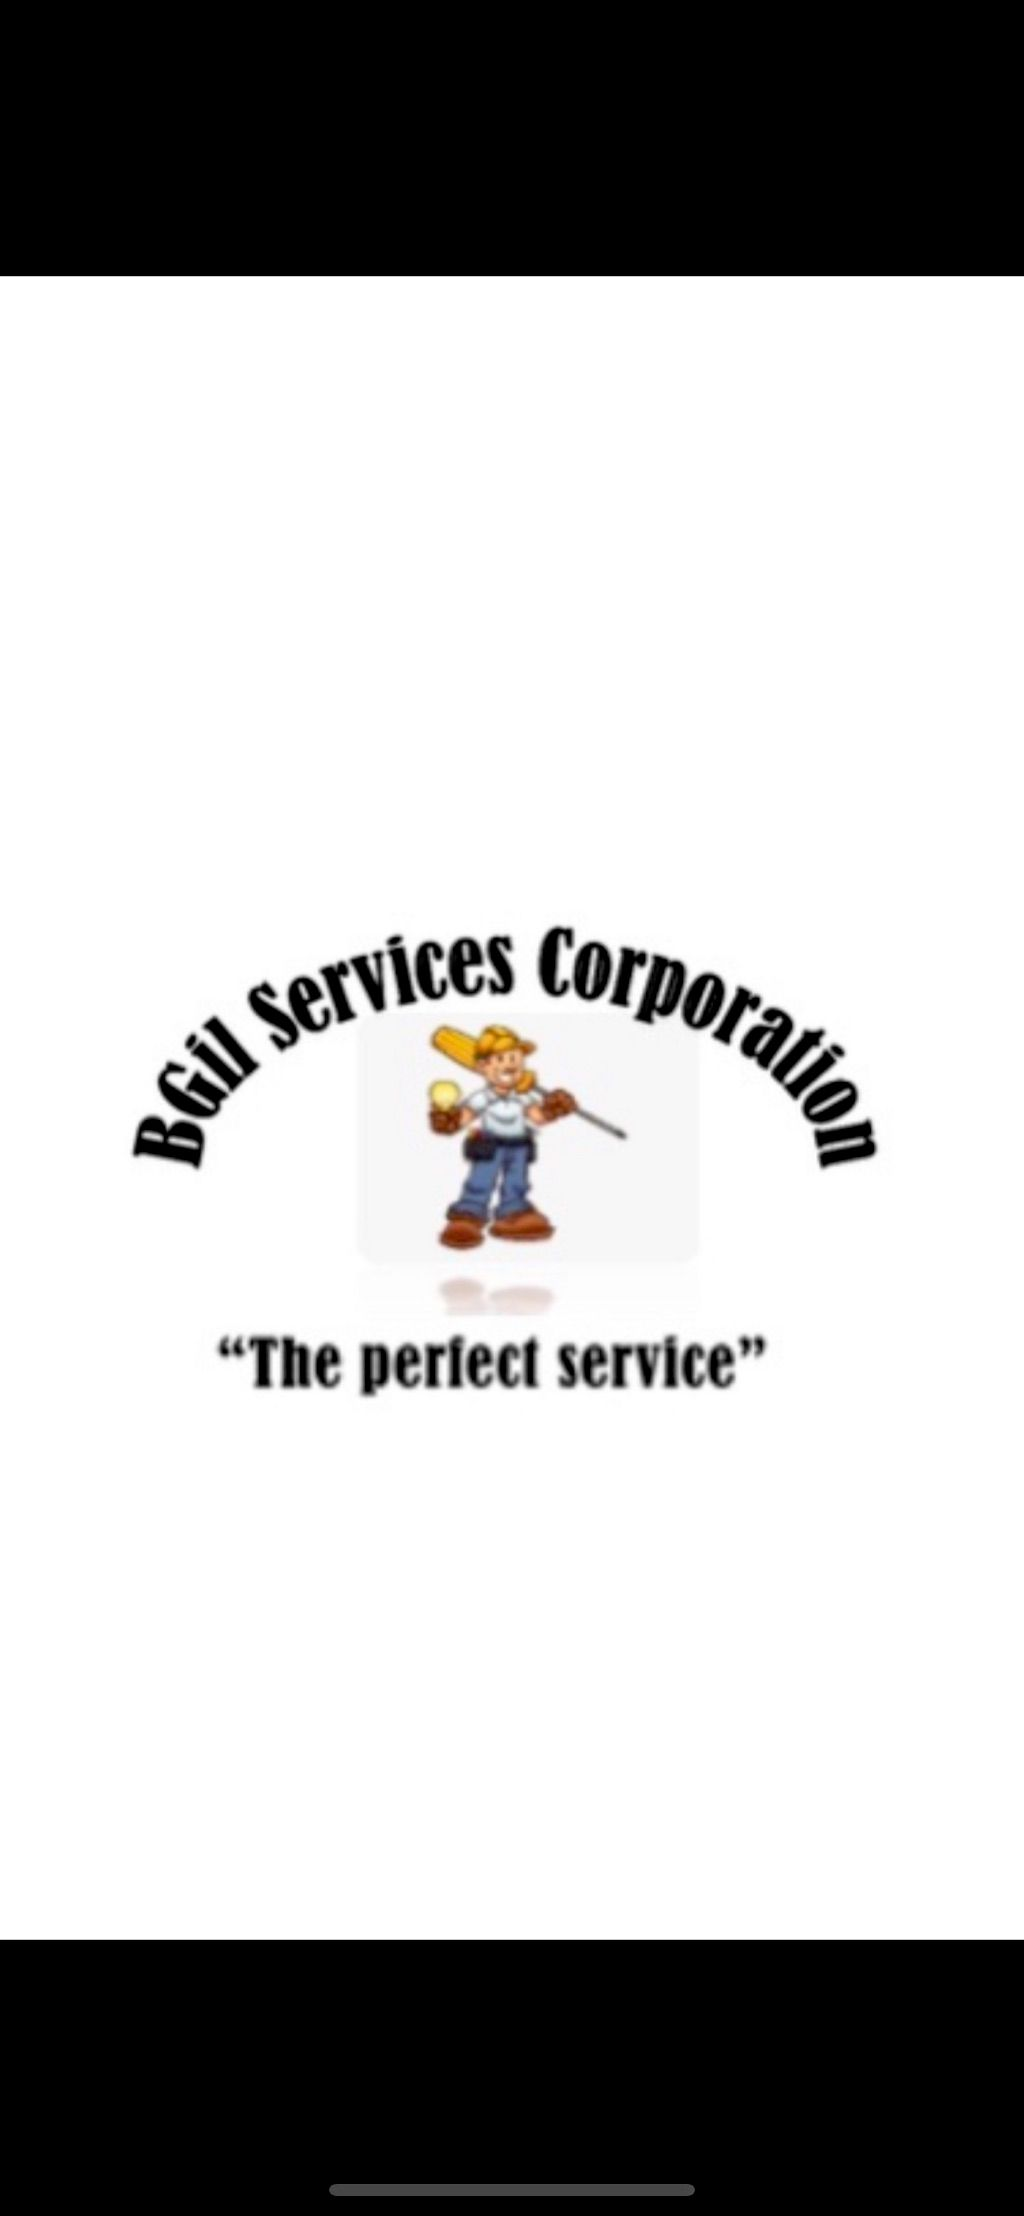 B.gil Services Corporation